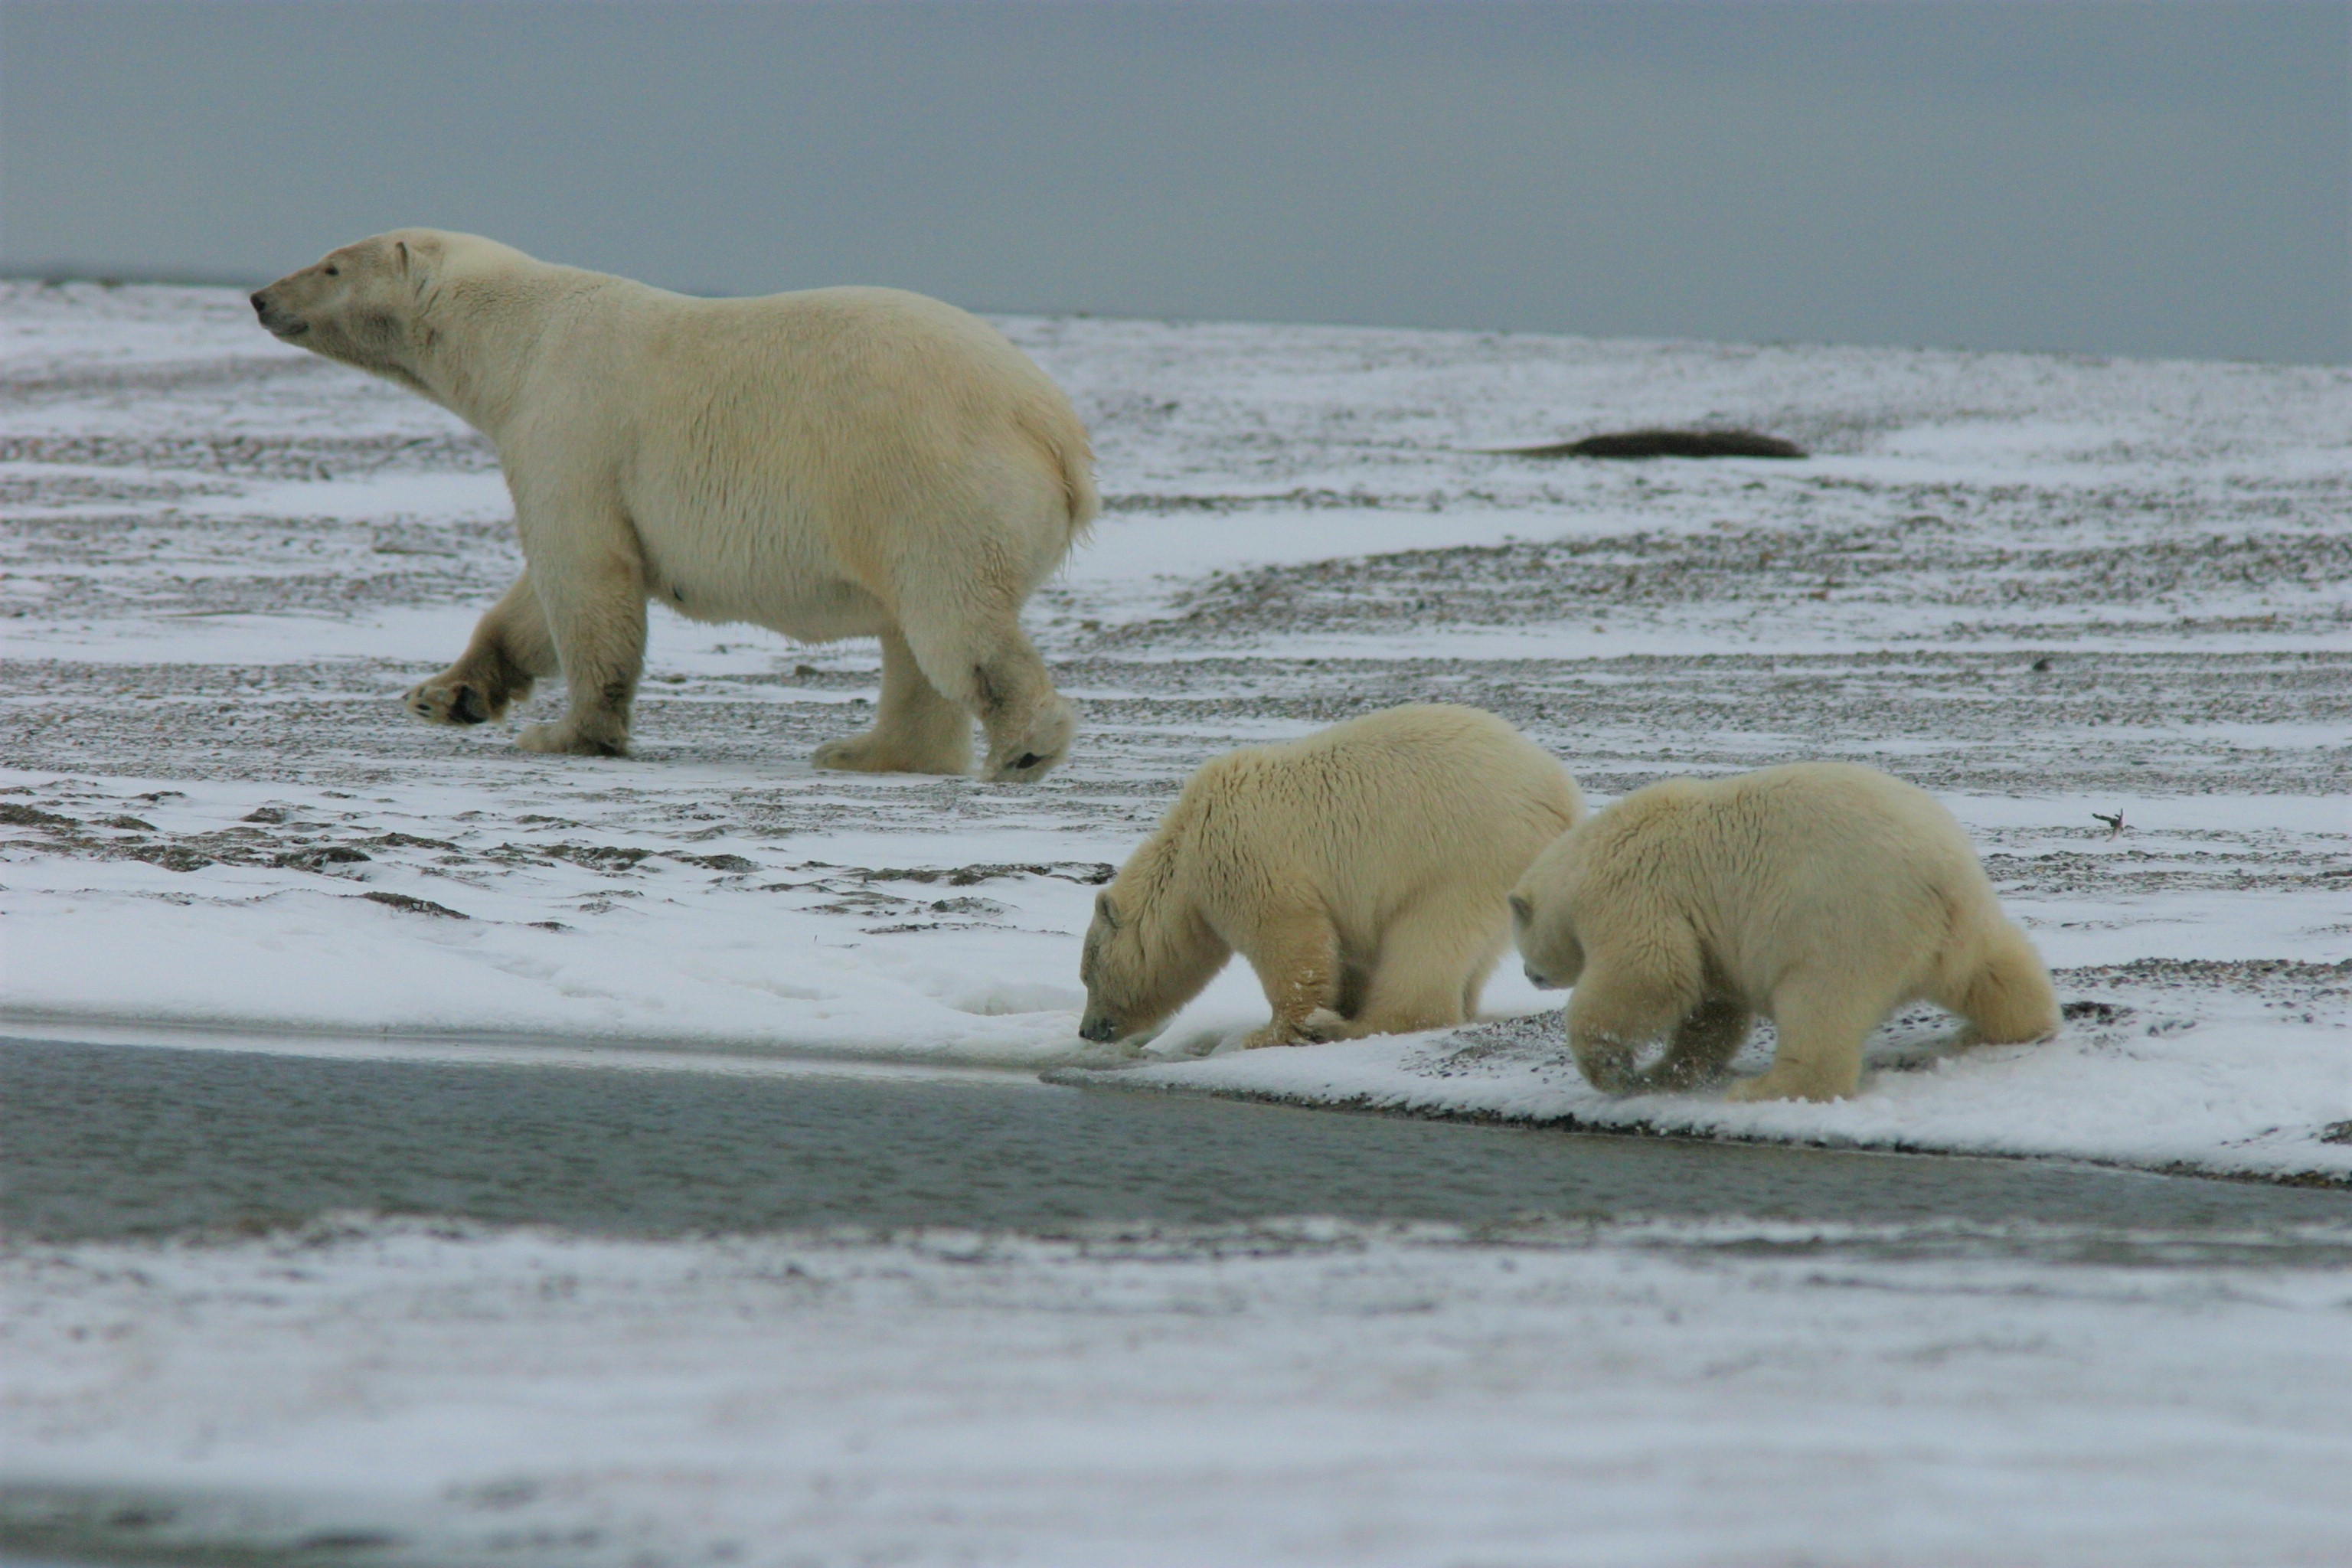 Profile of a mother polar bear with cubs following, sniffing at the ground.